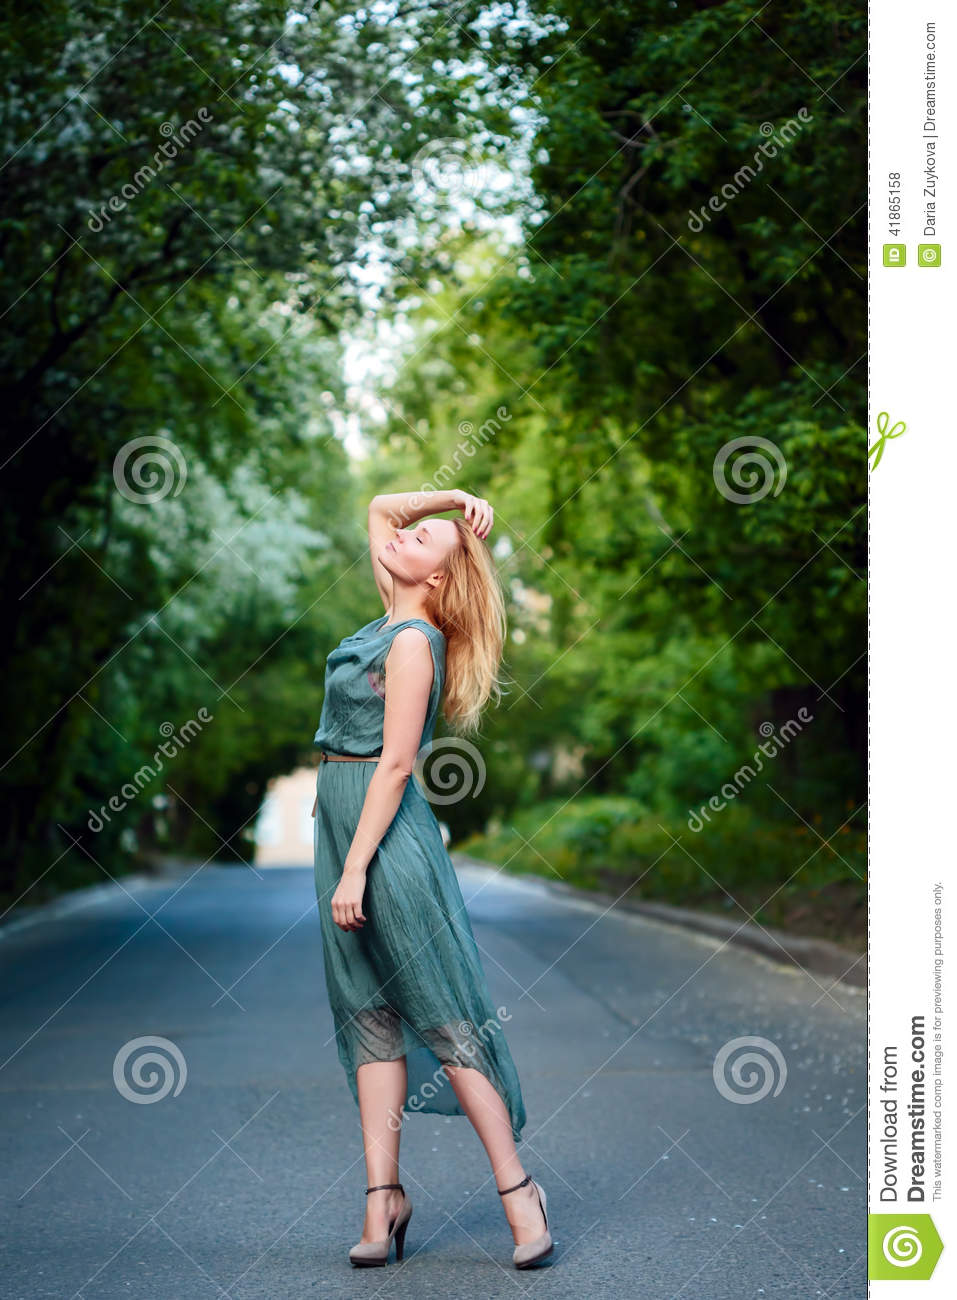 Young blonde girl dancing on the road